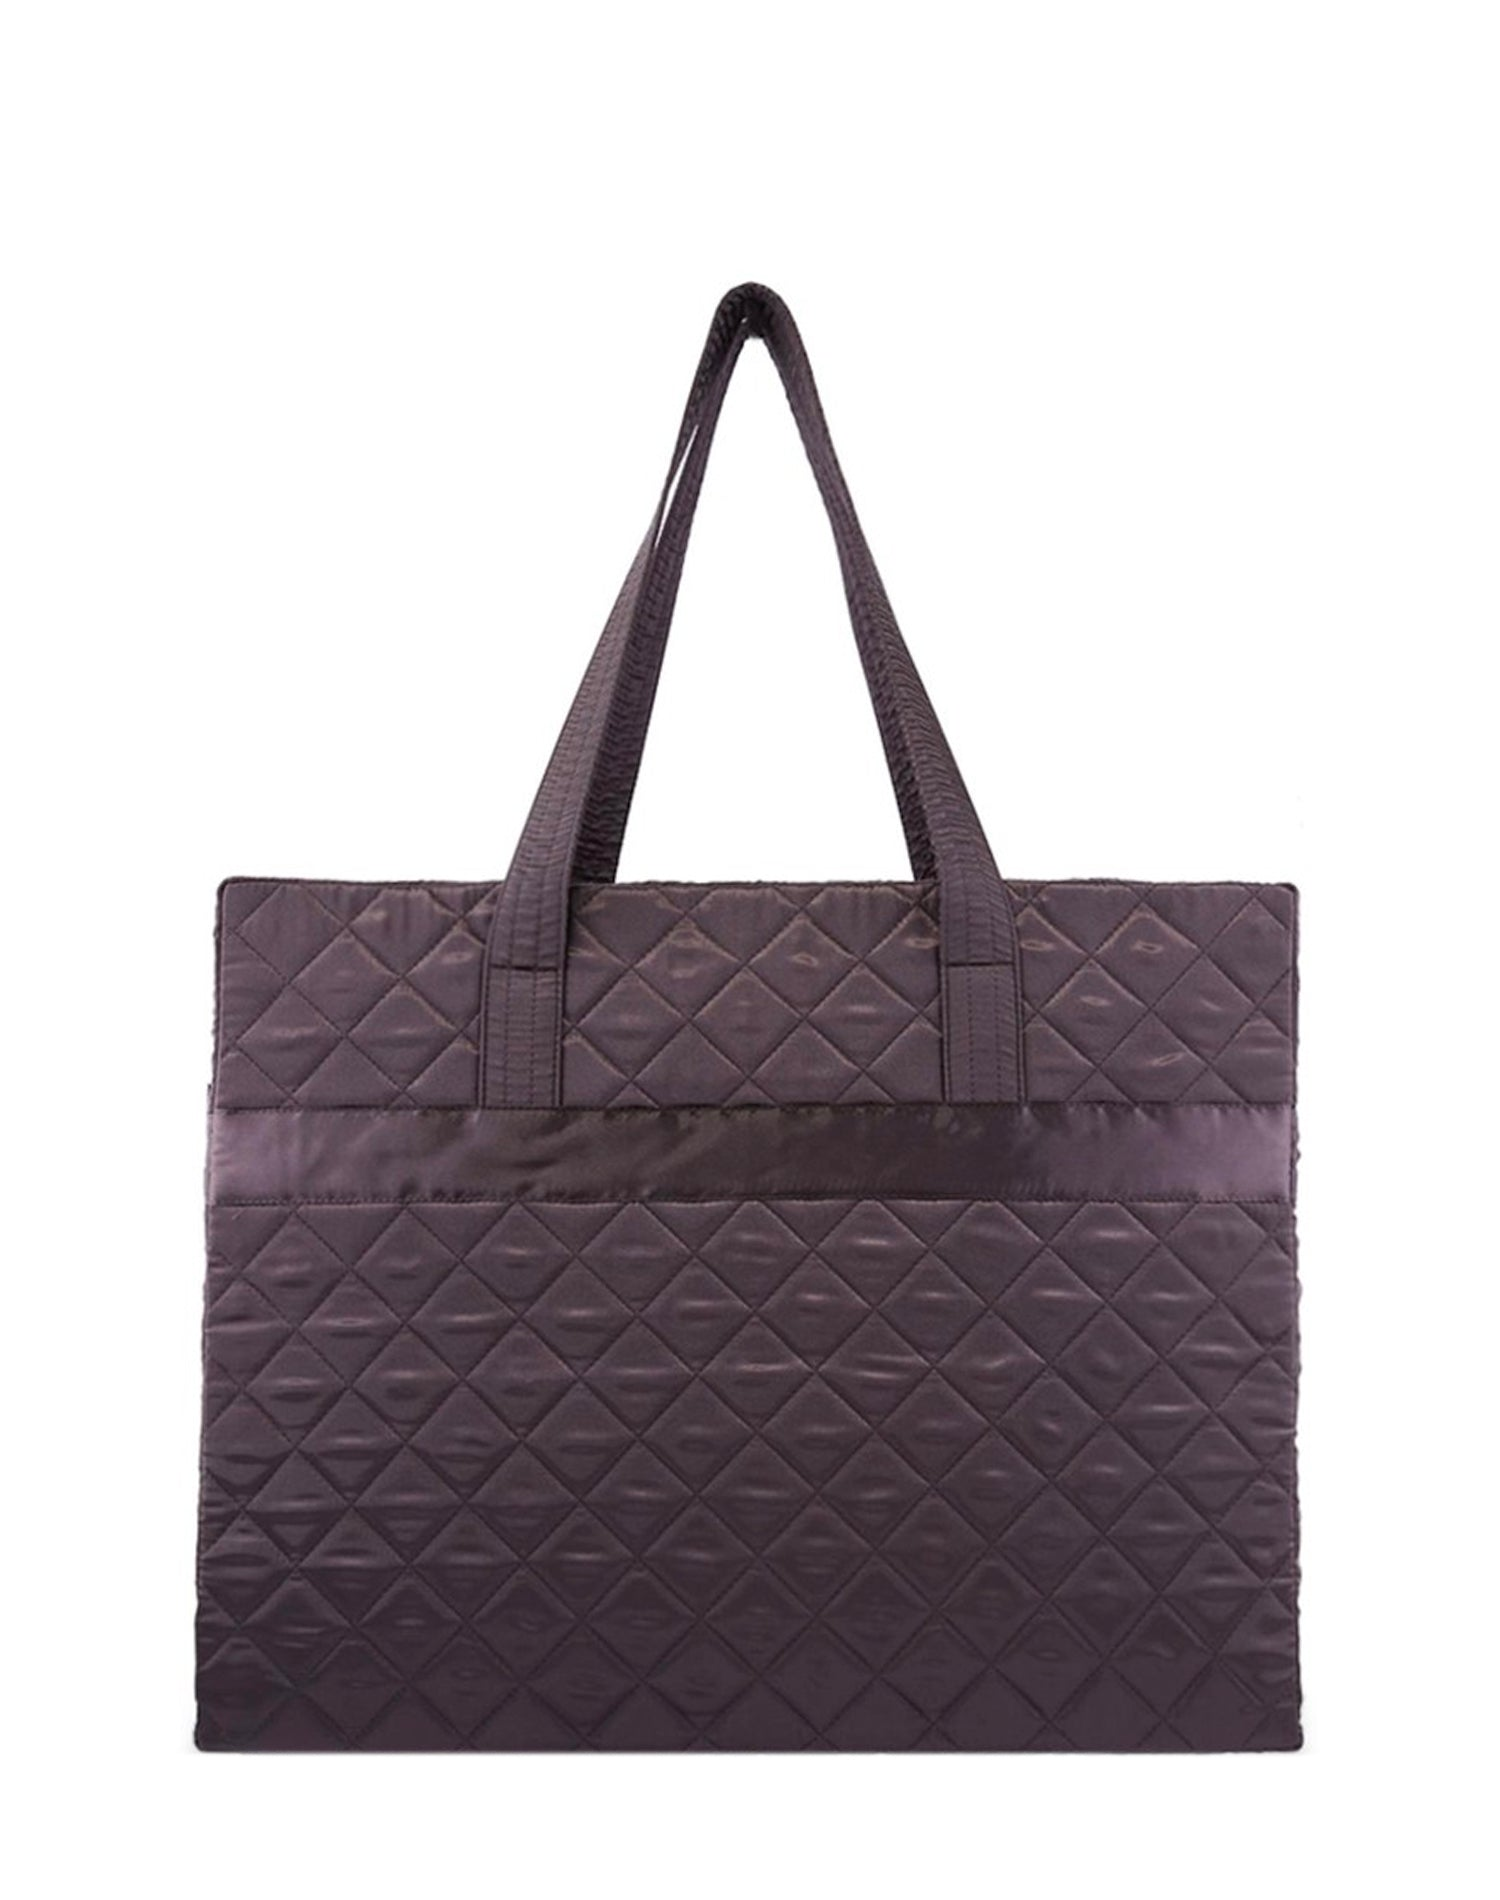 Deep Brown Satin Quilted Tote Bag.深啡色缎布側背袋